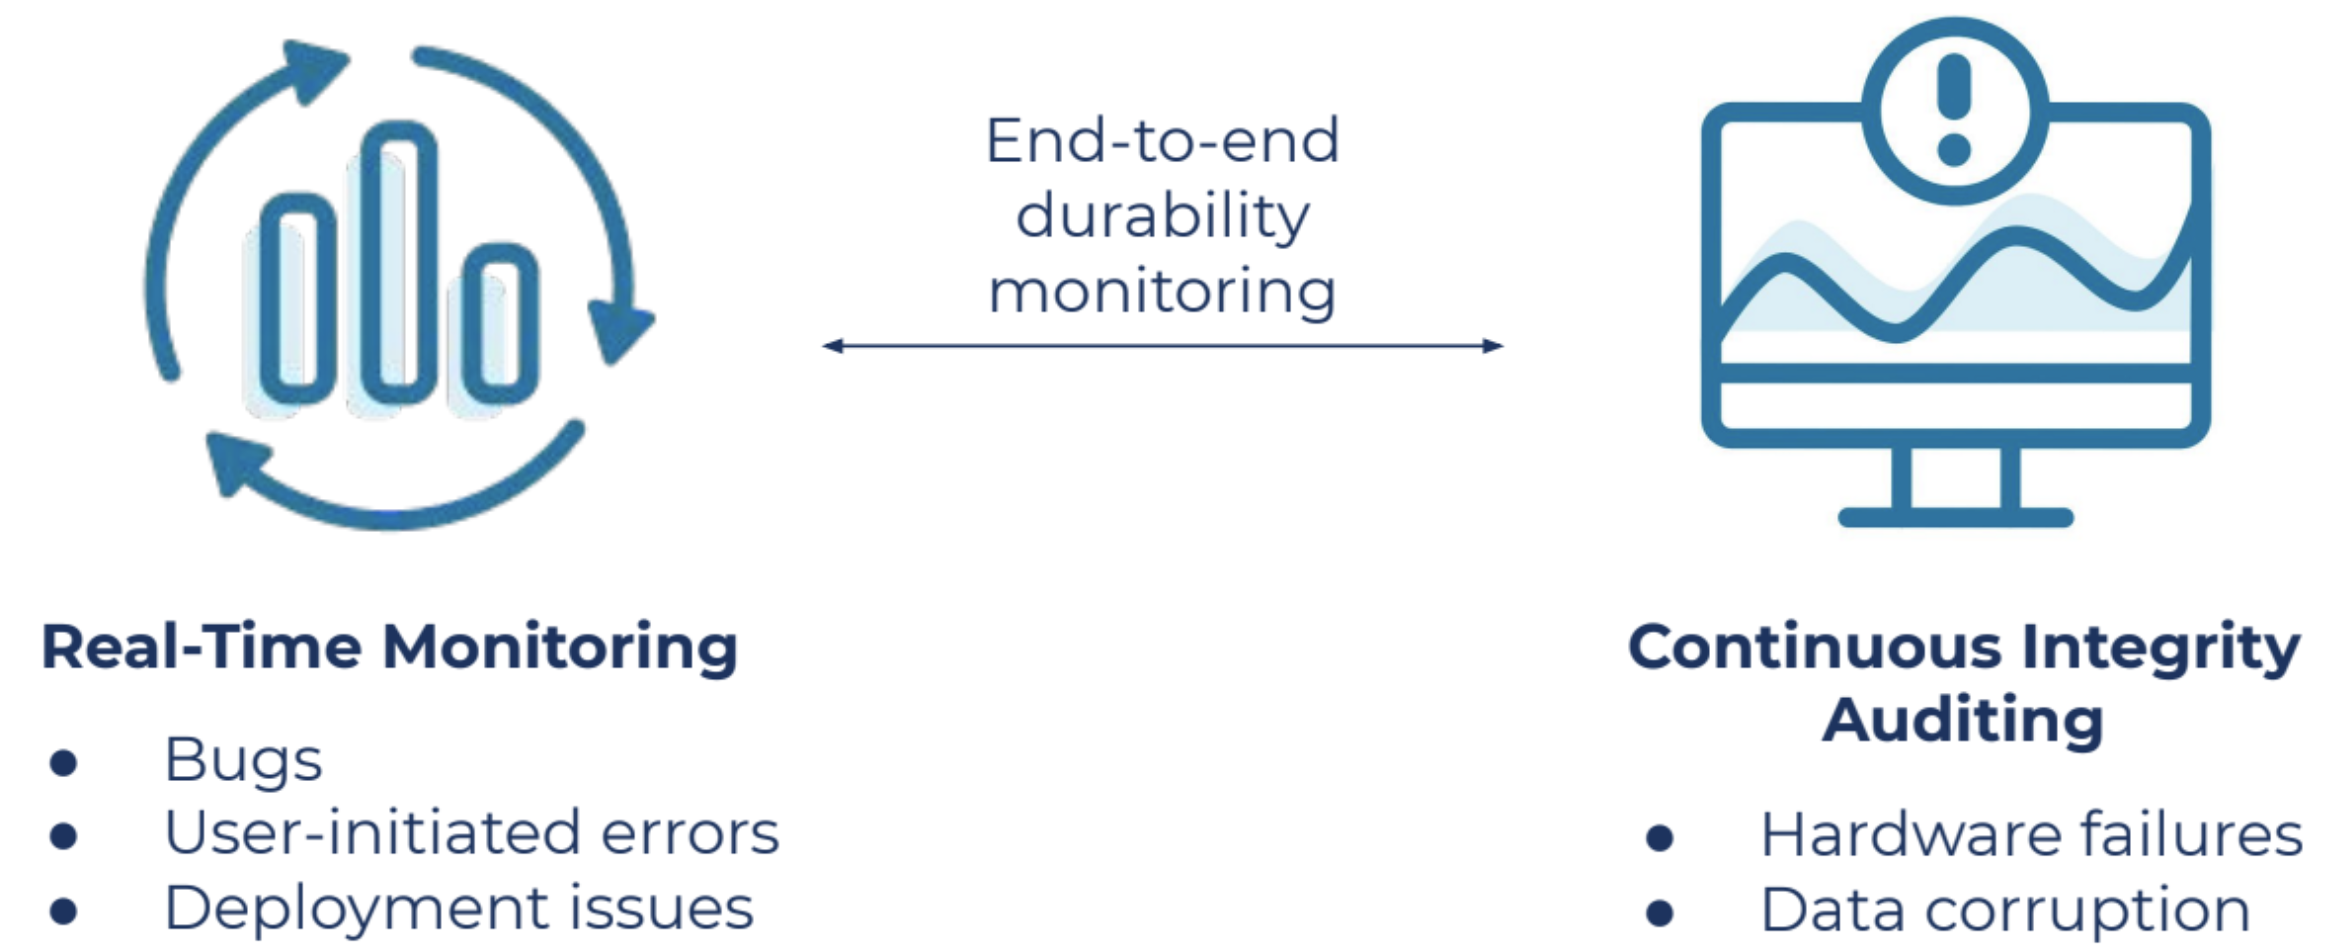 End-to-end durability monitoring